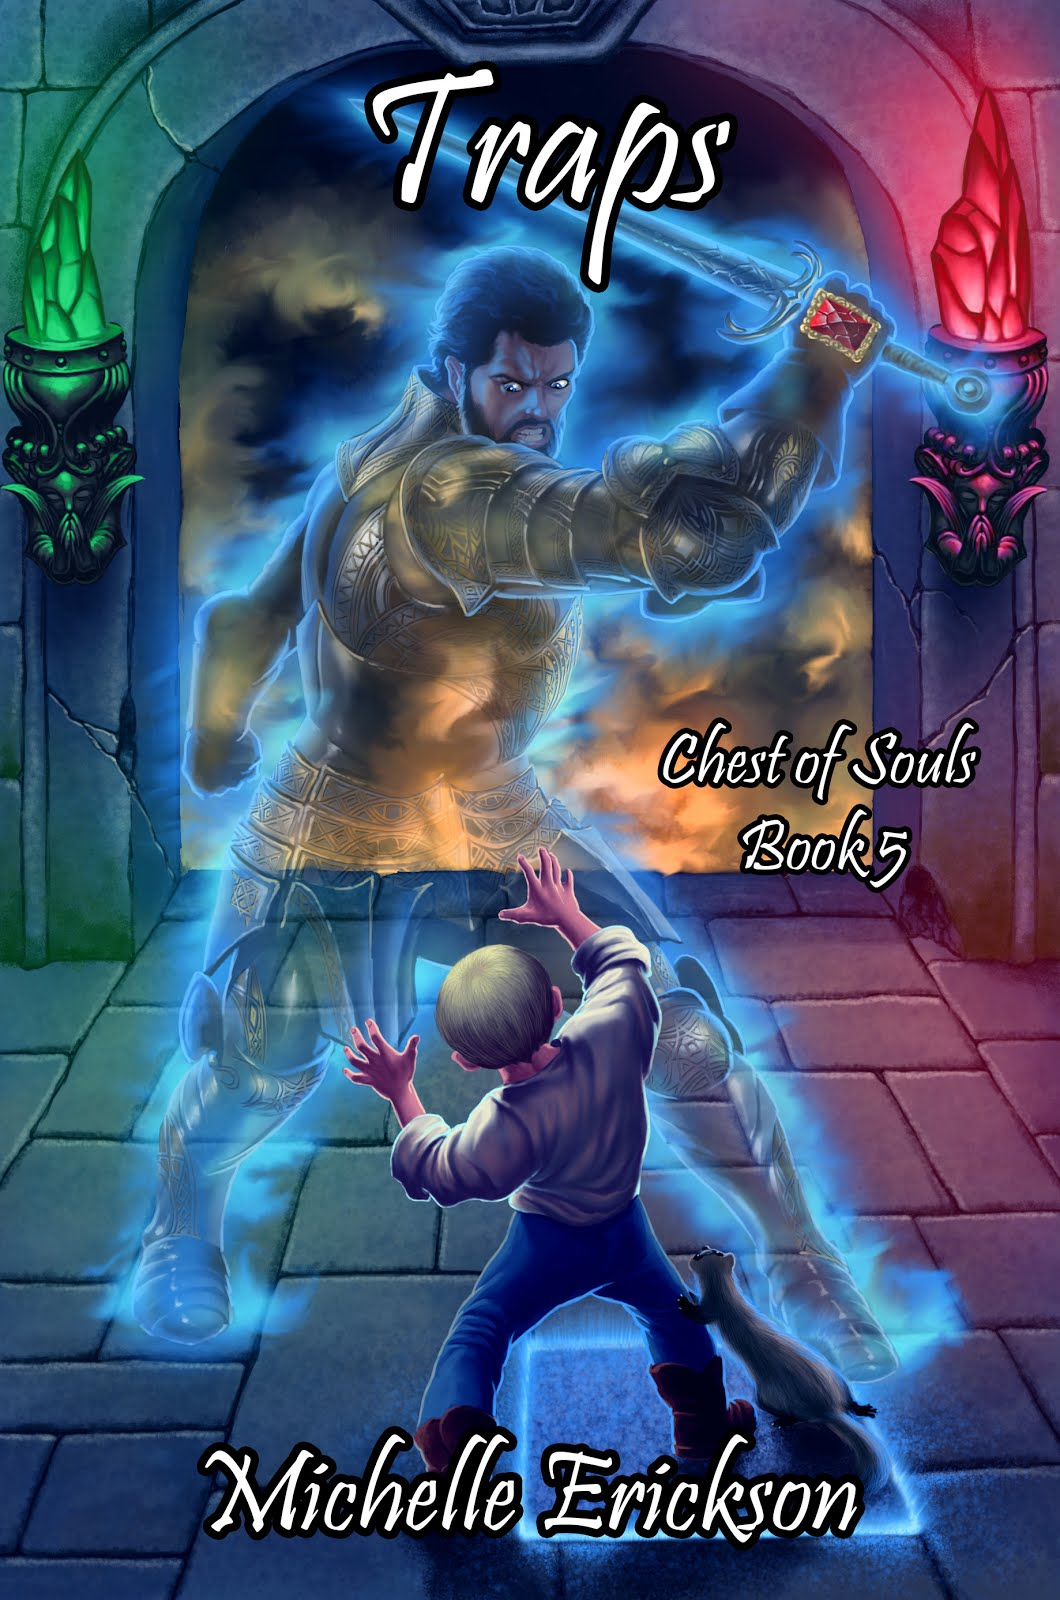 Chest of Souls Book 5